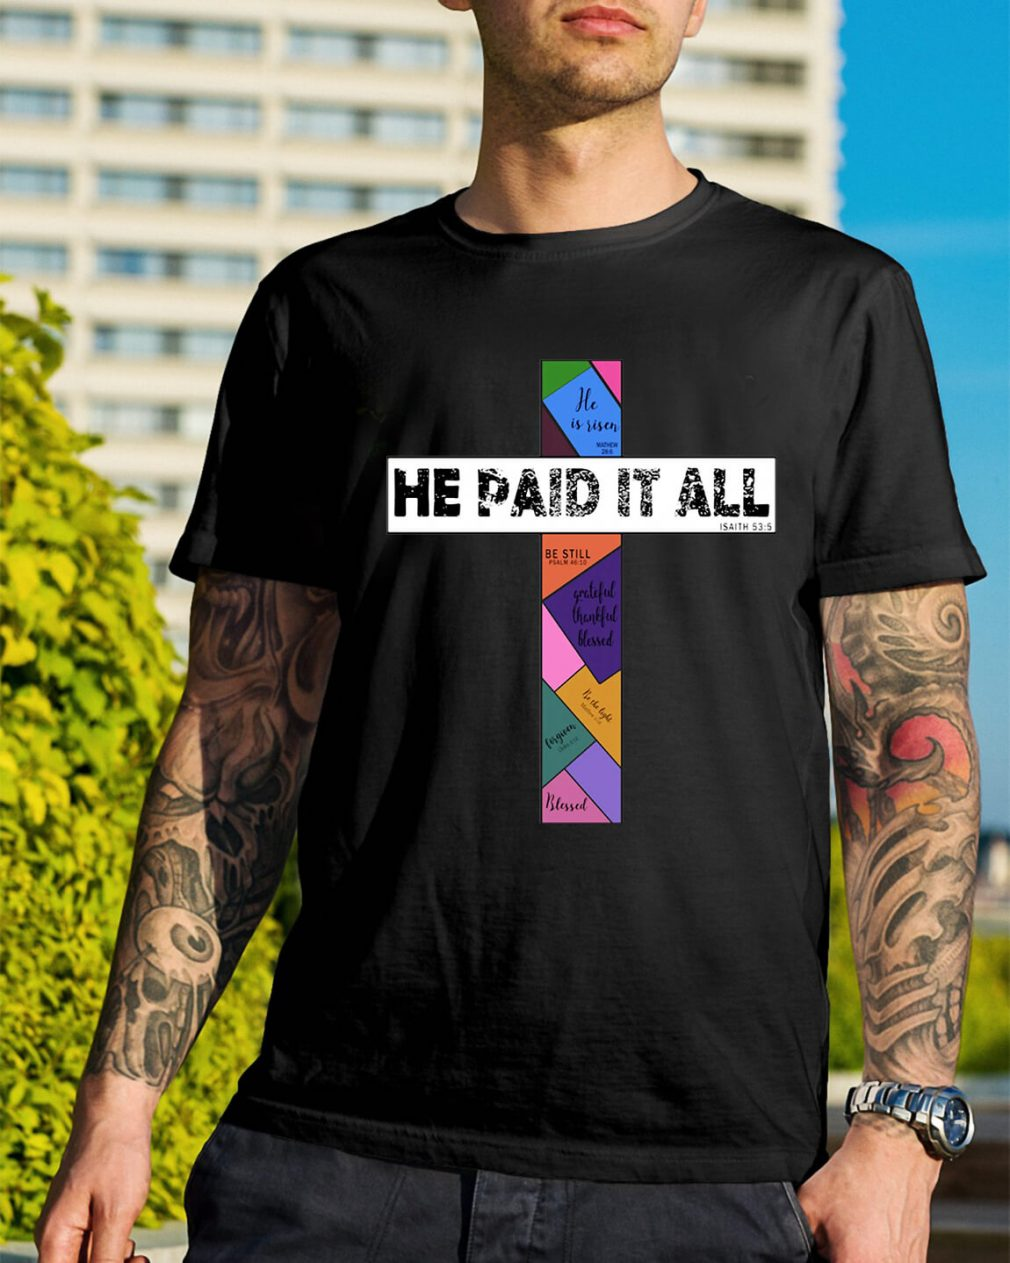 He paid it all Isaith shirt